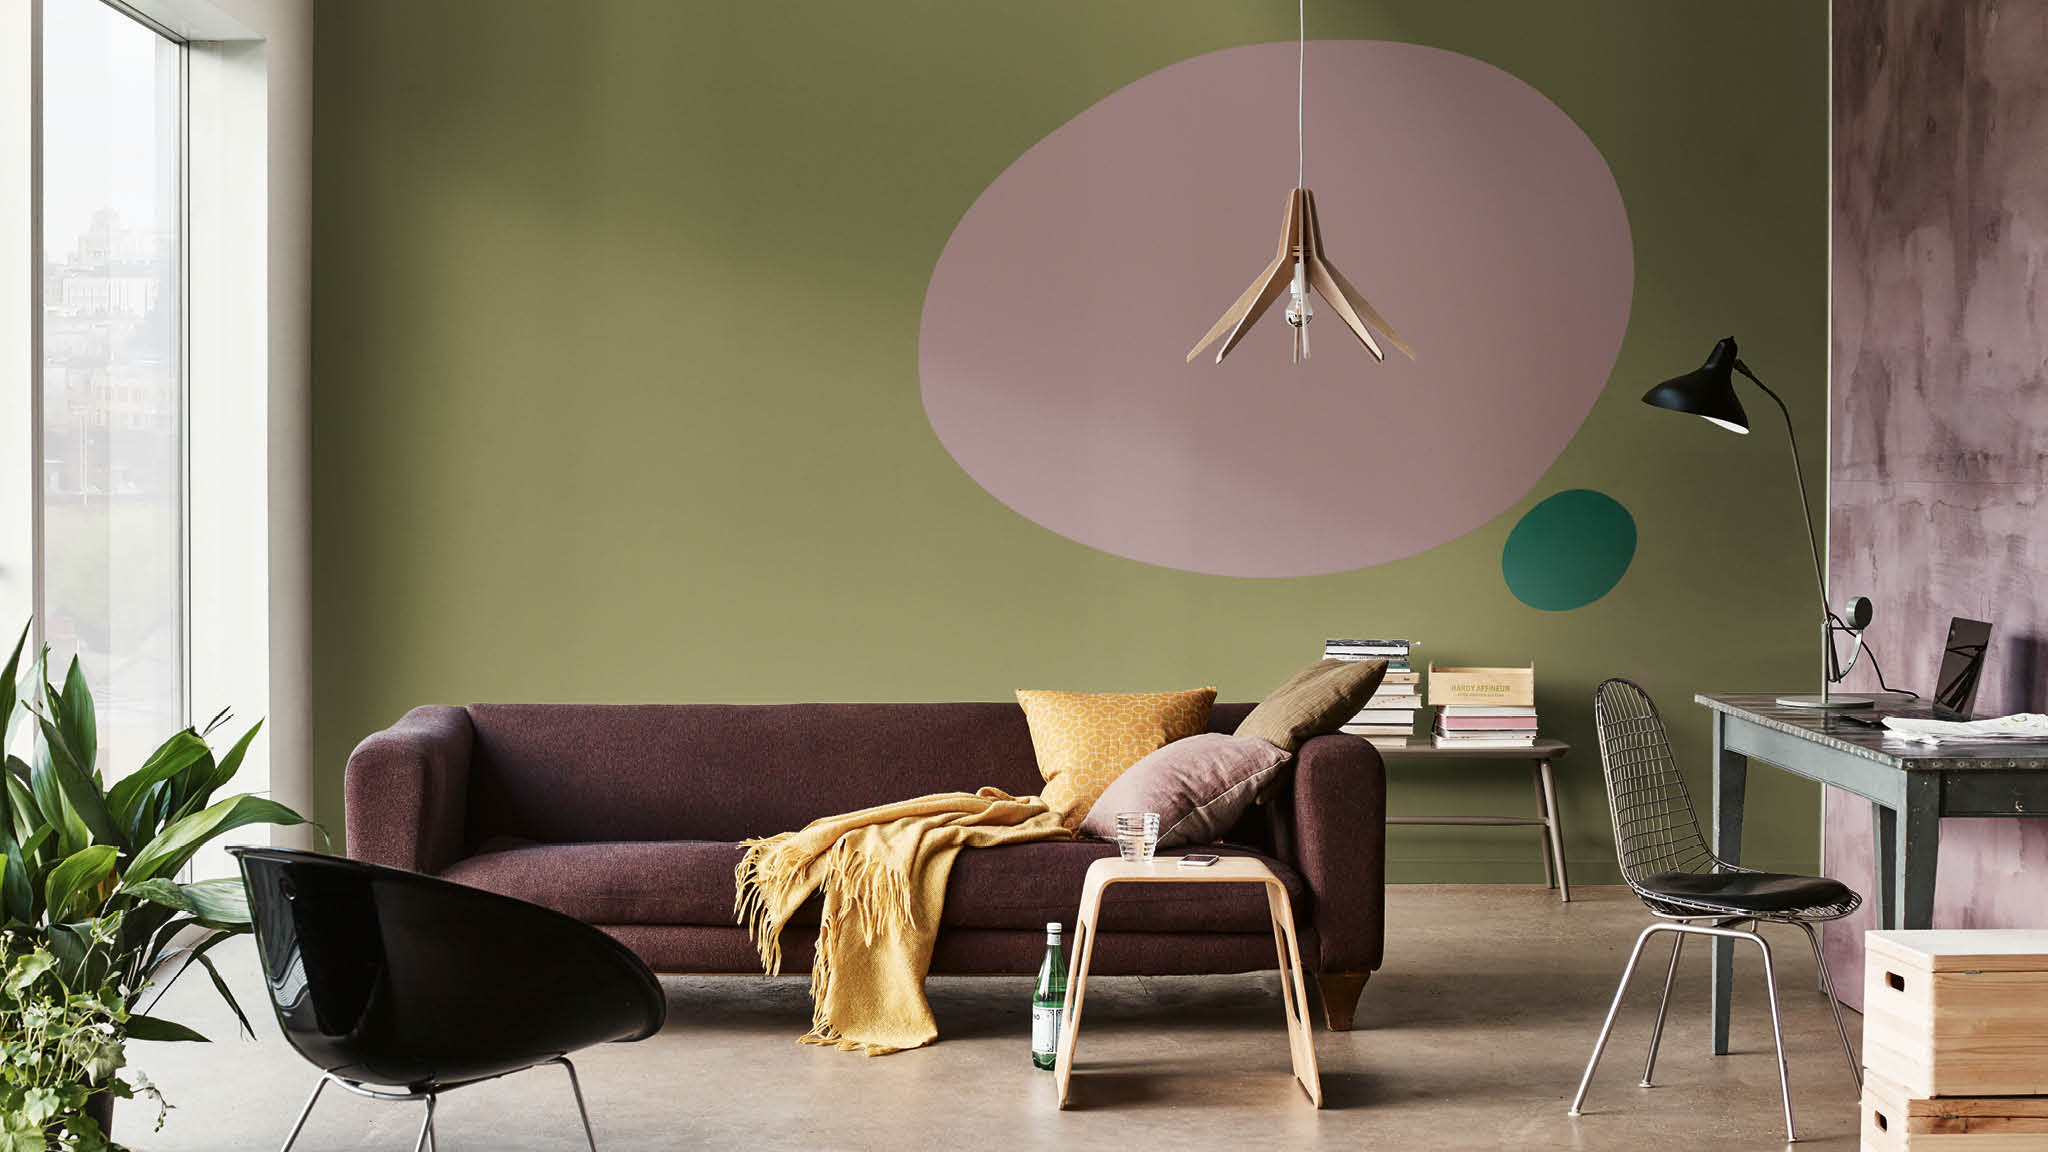 Green living room with oval